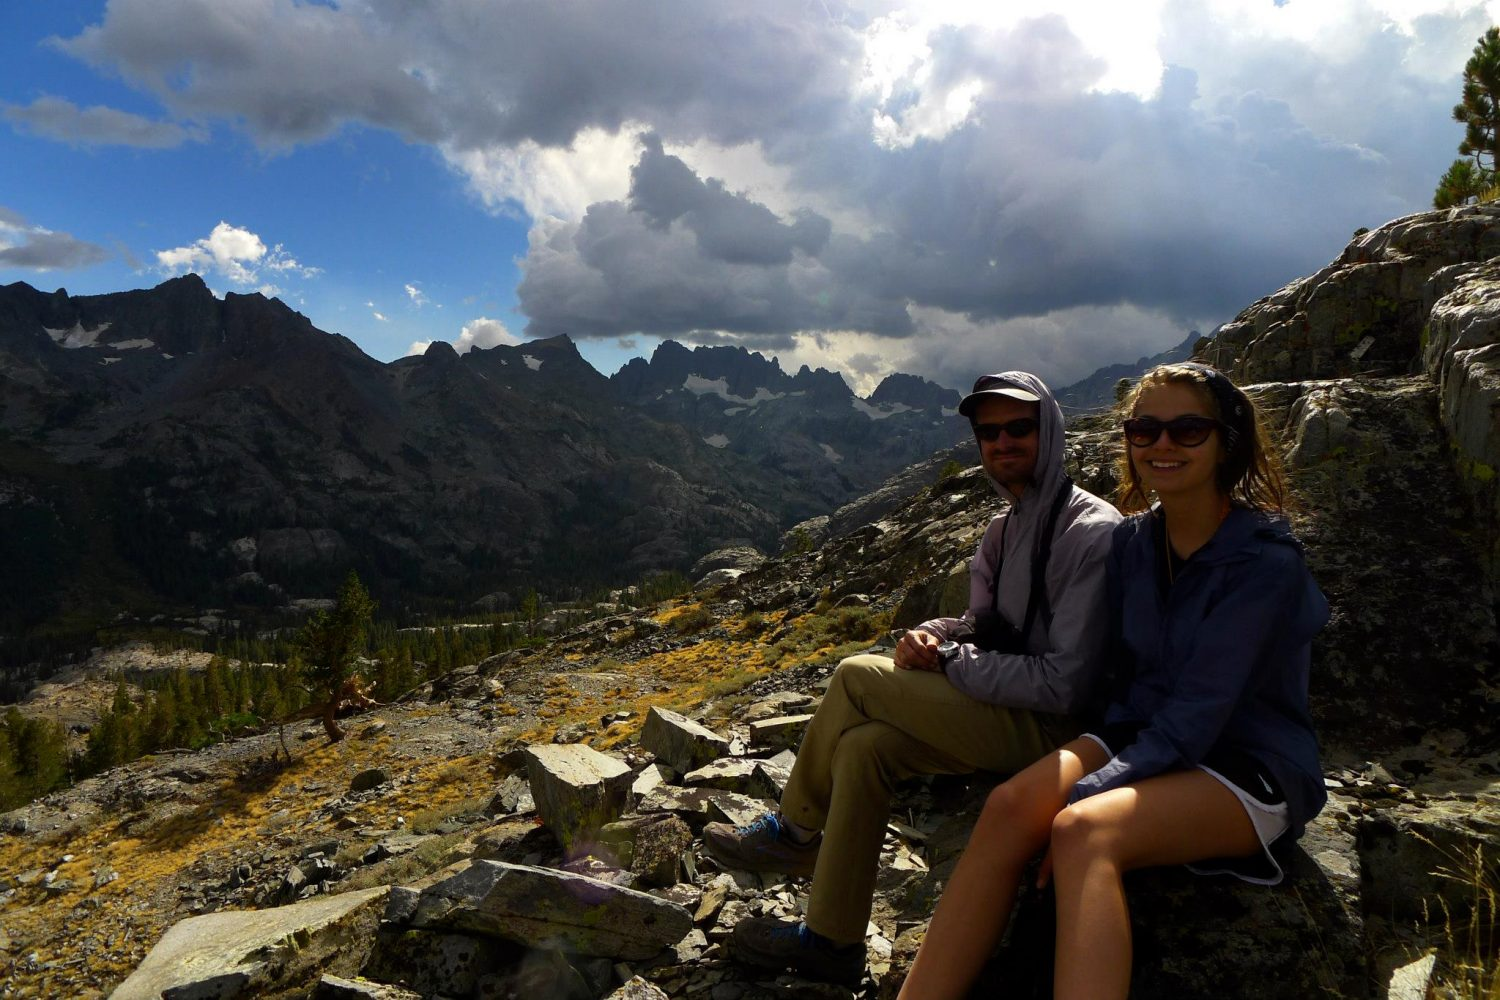 Photo+Courtesy+of+Betty+Thurmond.%0D%0AHannah+Martin%2C+right%2C+relaxes+after+a+hike.